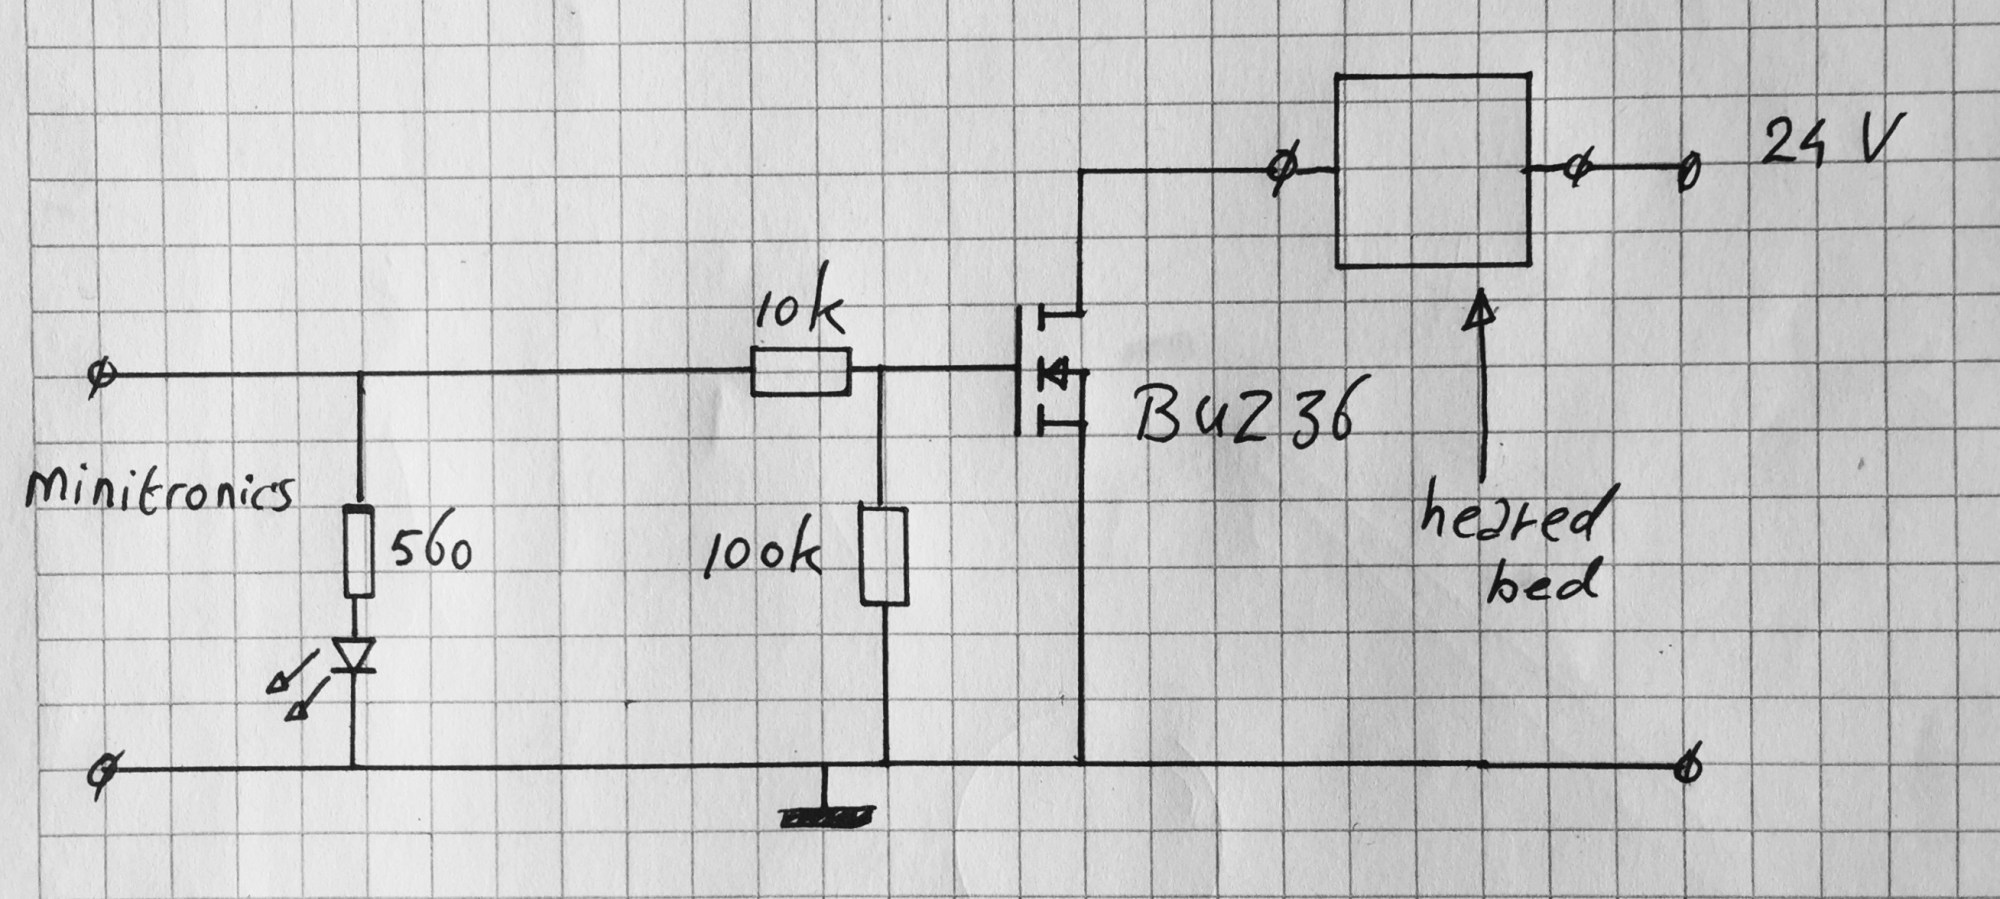 hight resolution of heated bed mosfet switch circuit diagram